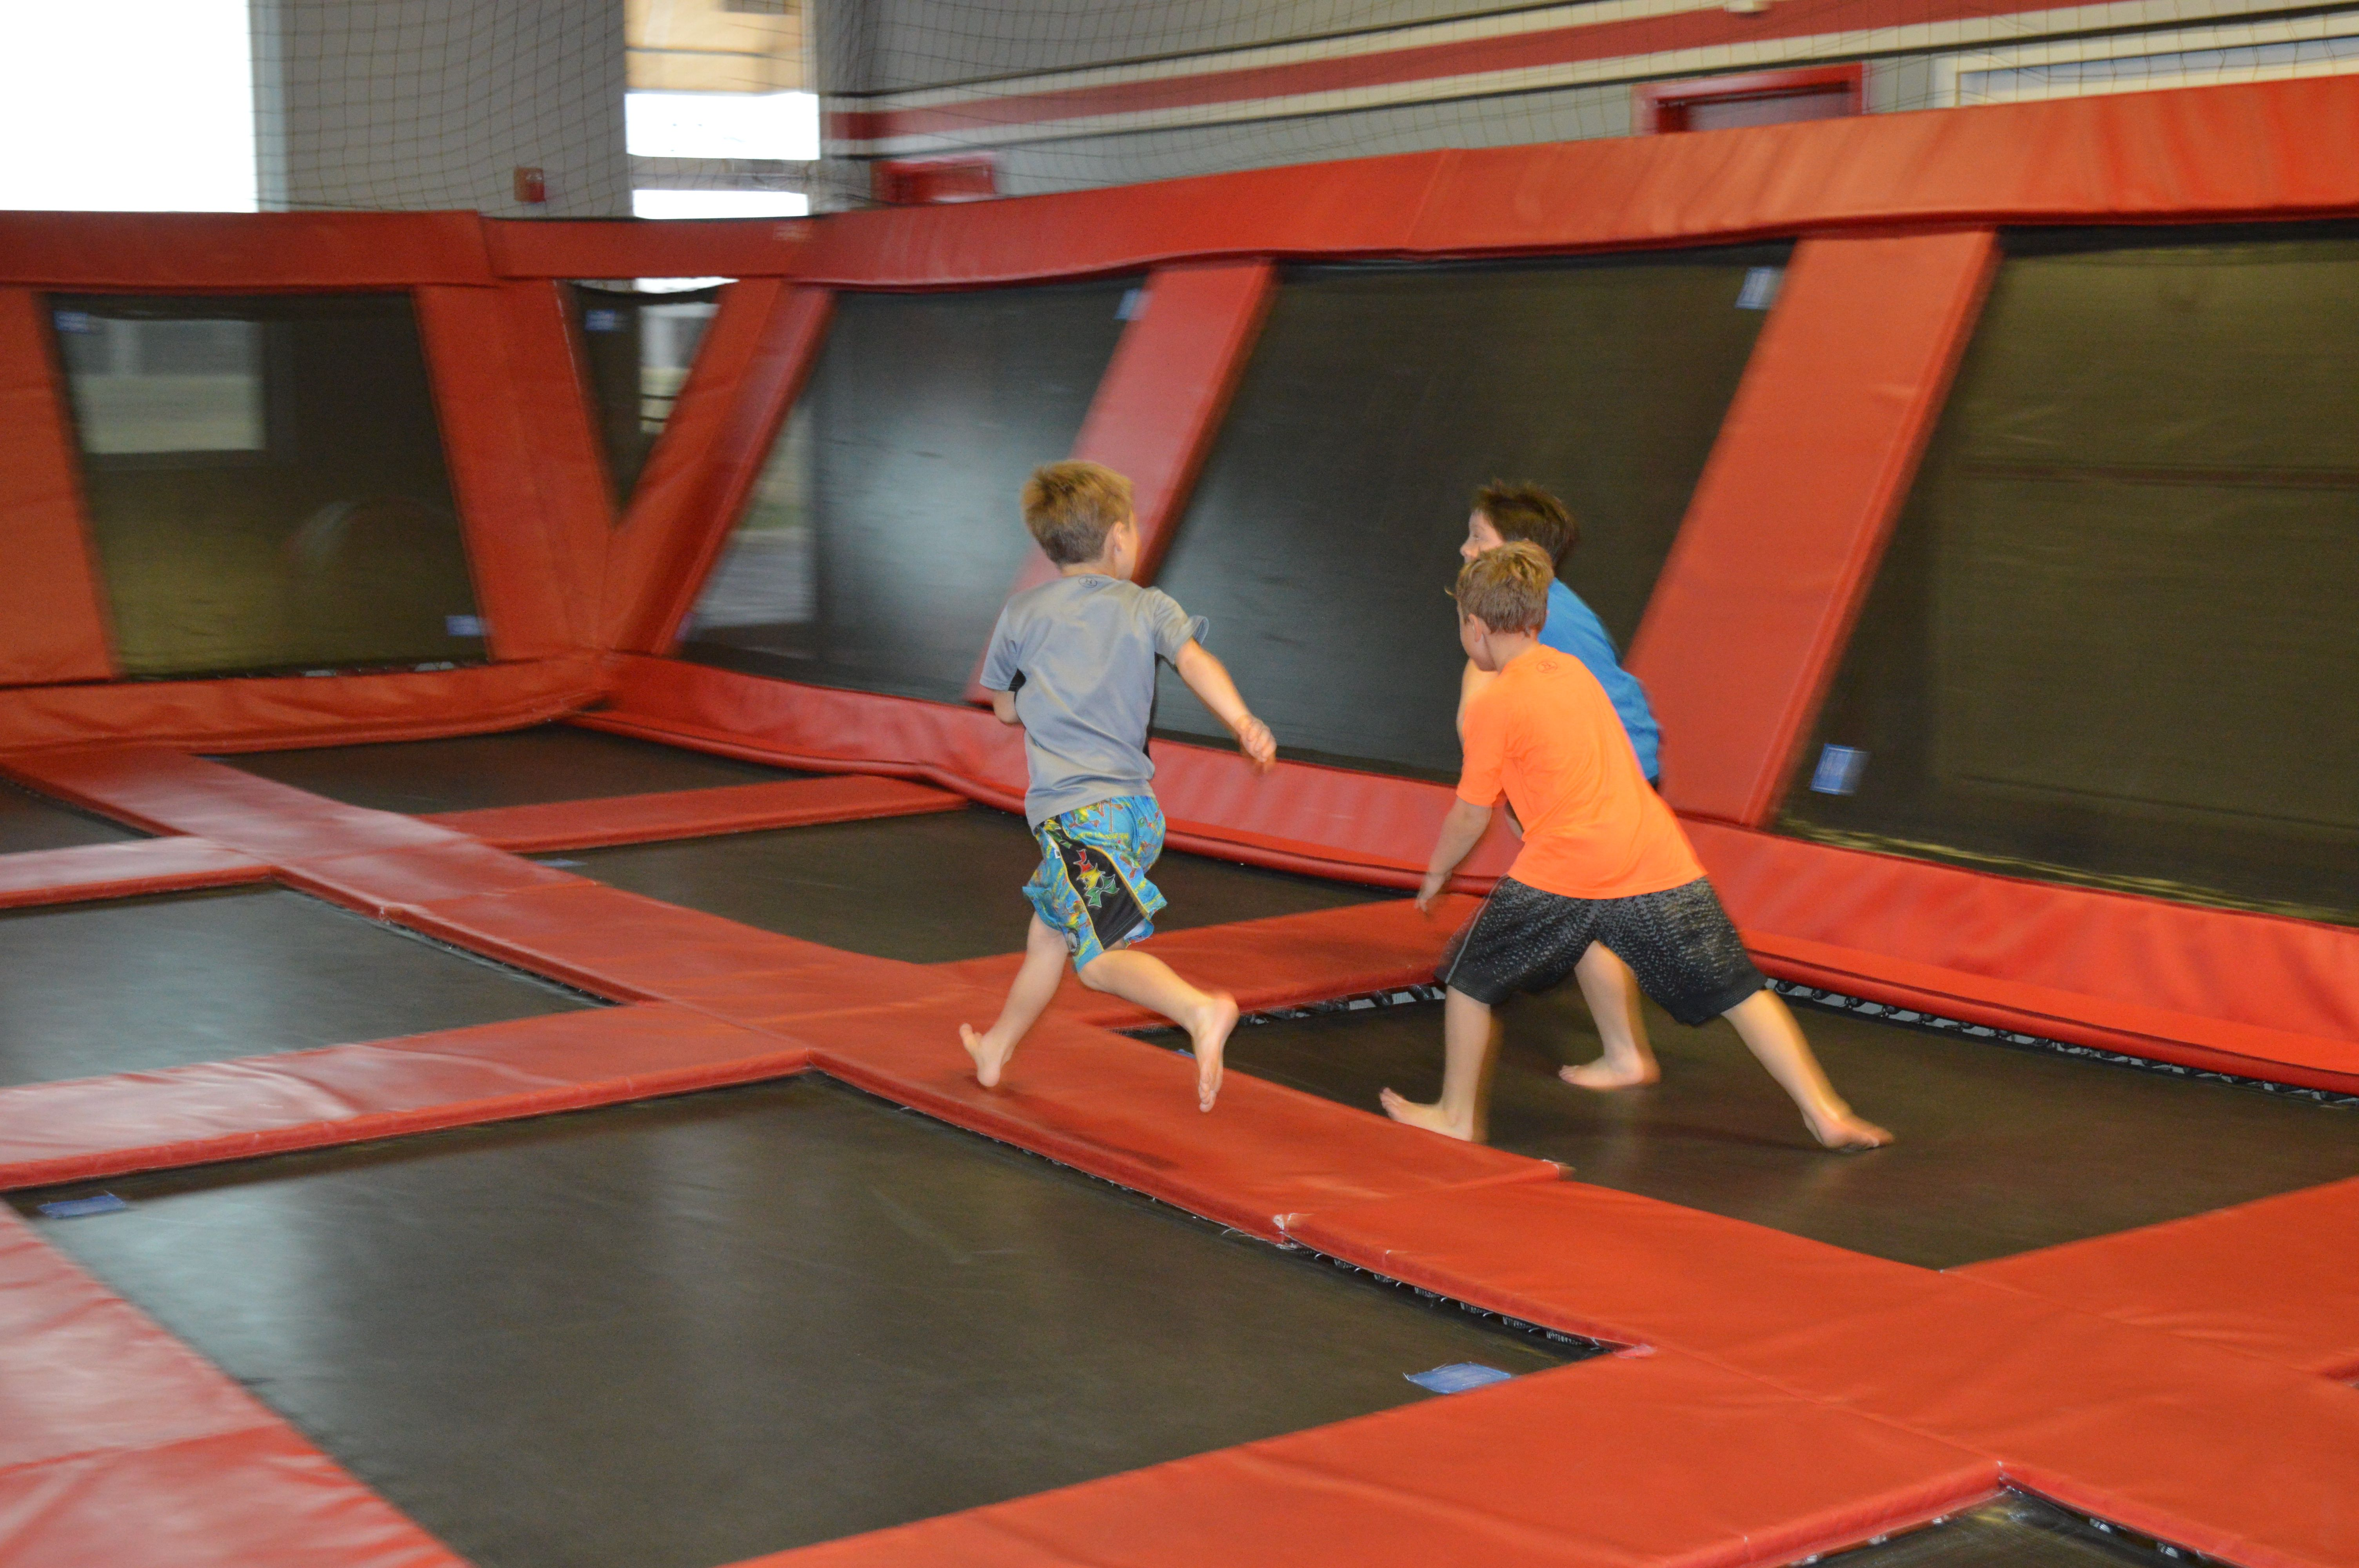 The Bounce Club Trampoline Park in Columbus